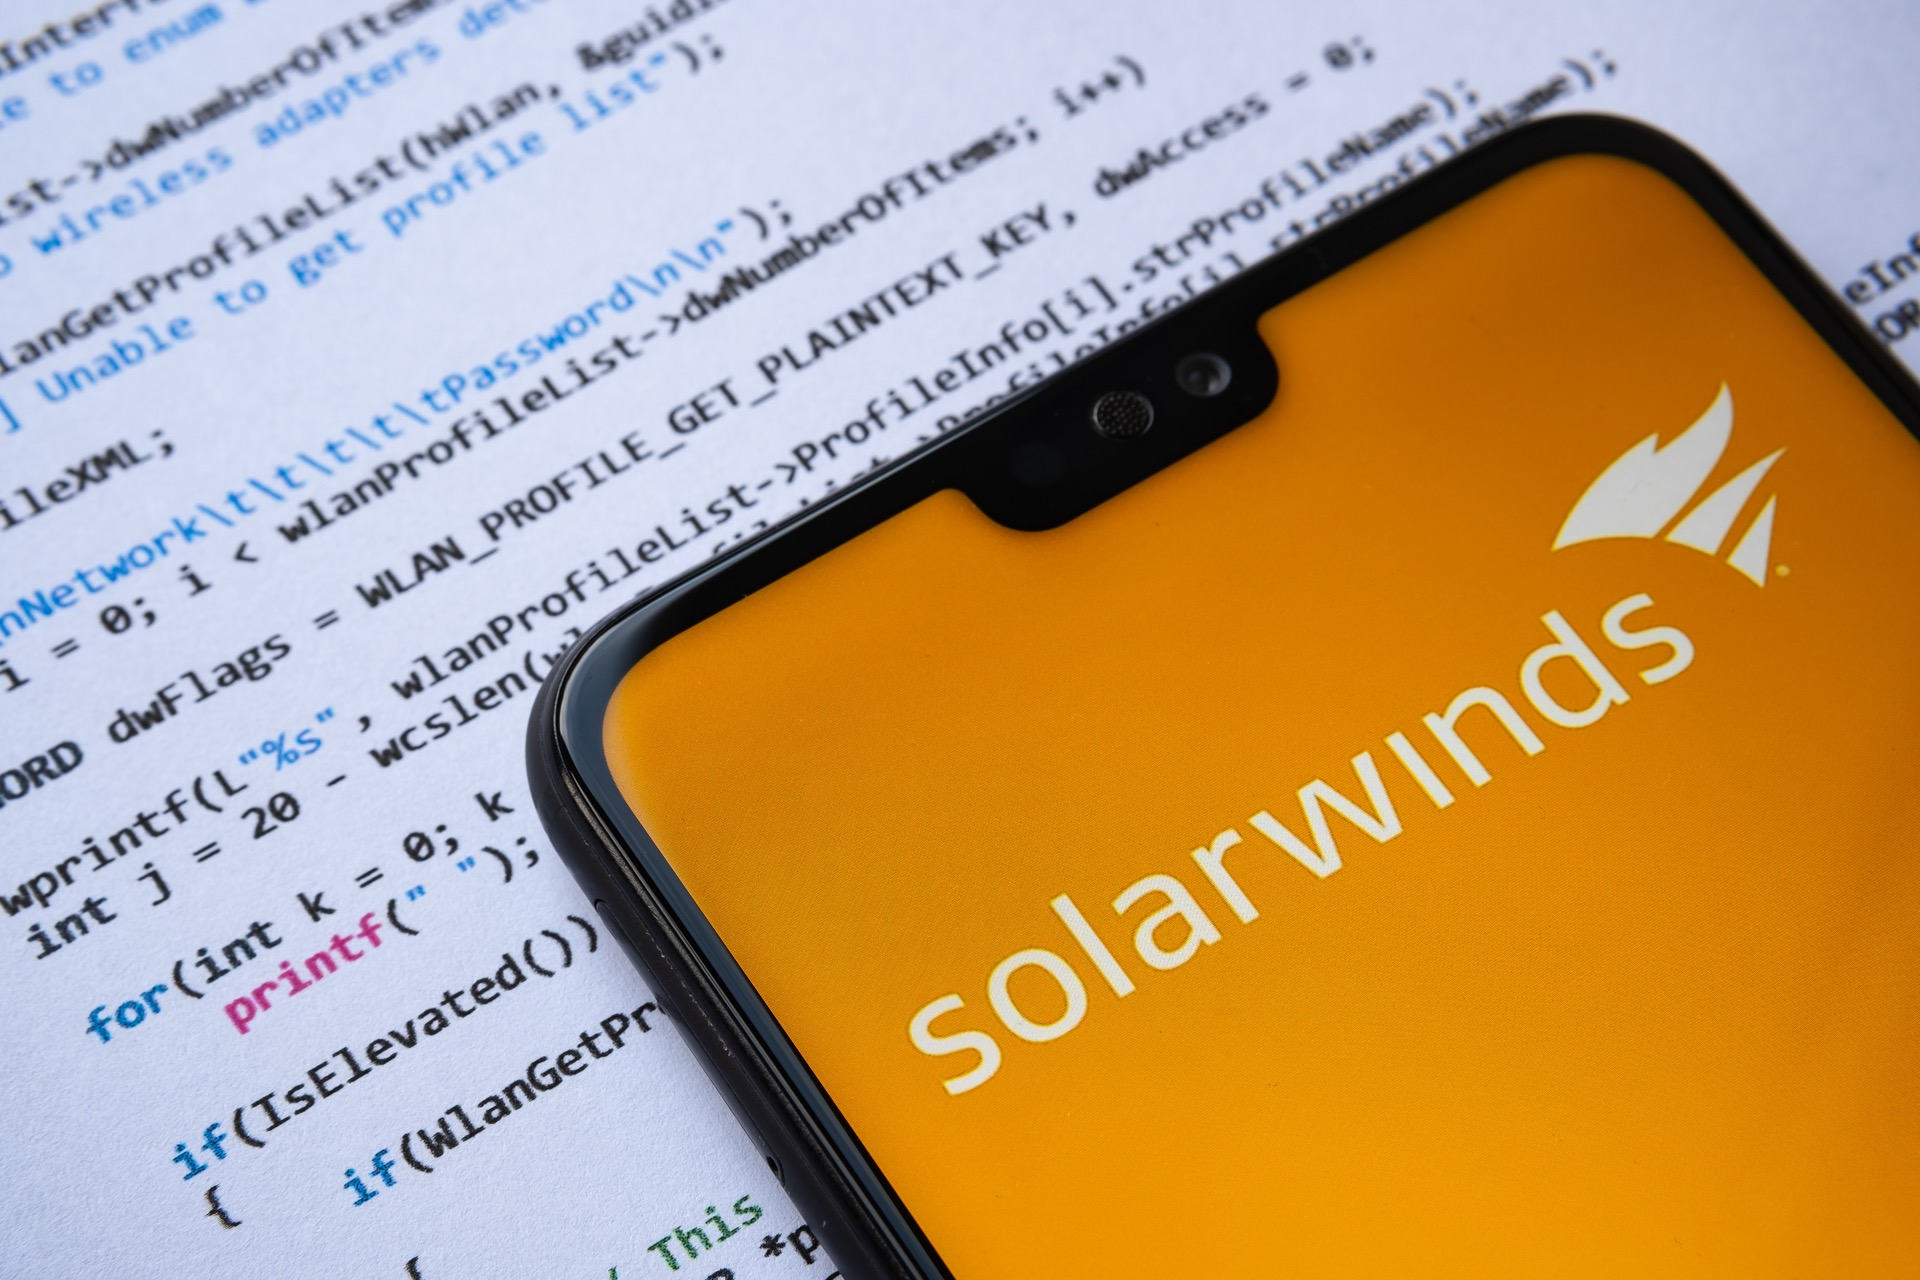 More trouble for SolarWinds: Embattled software firm reveals new vulnerability